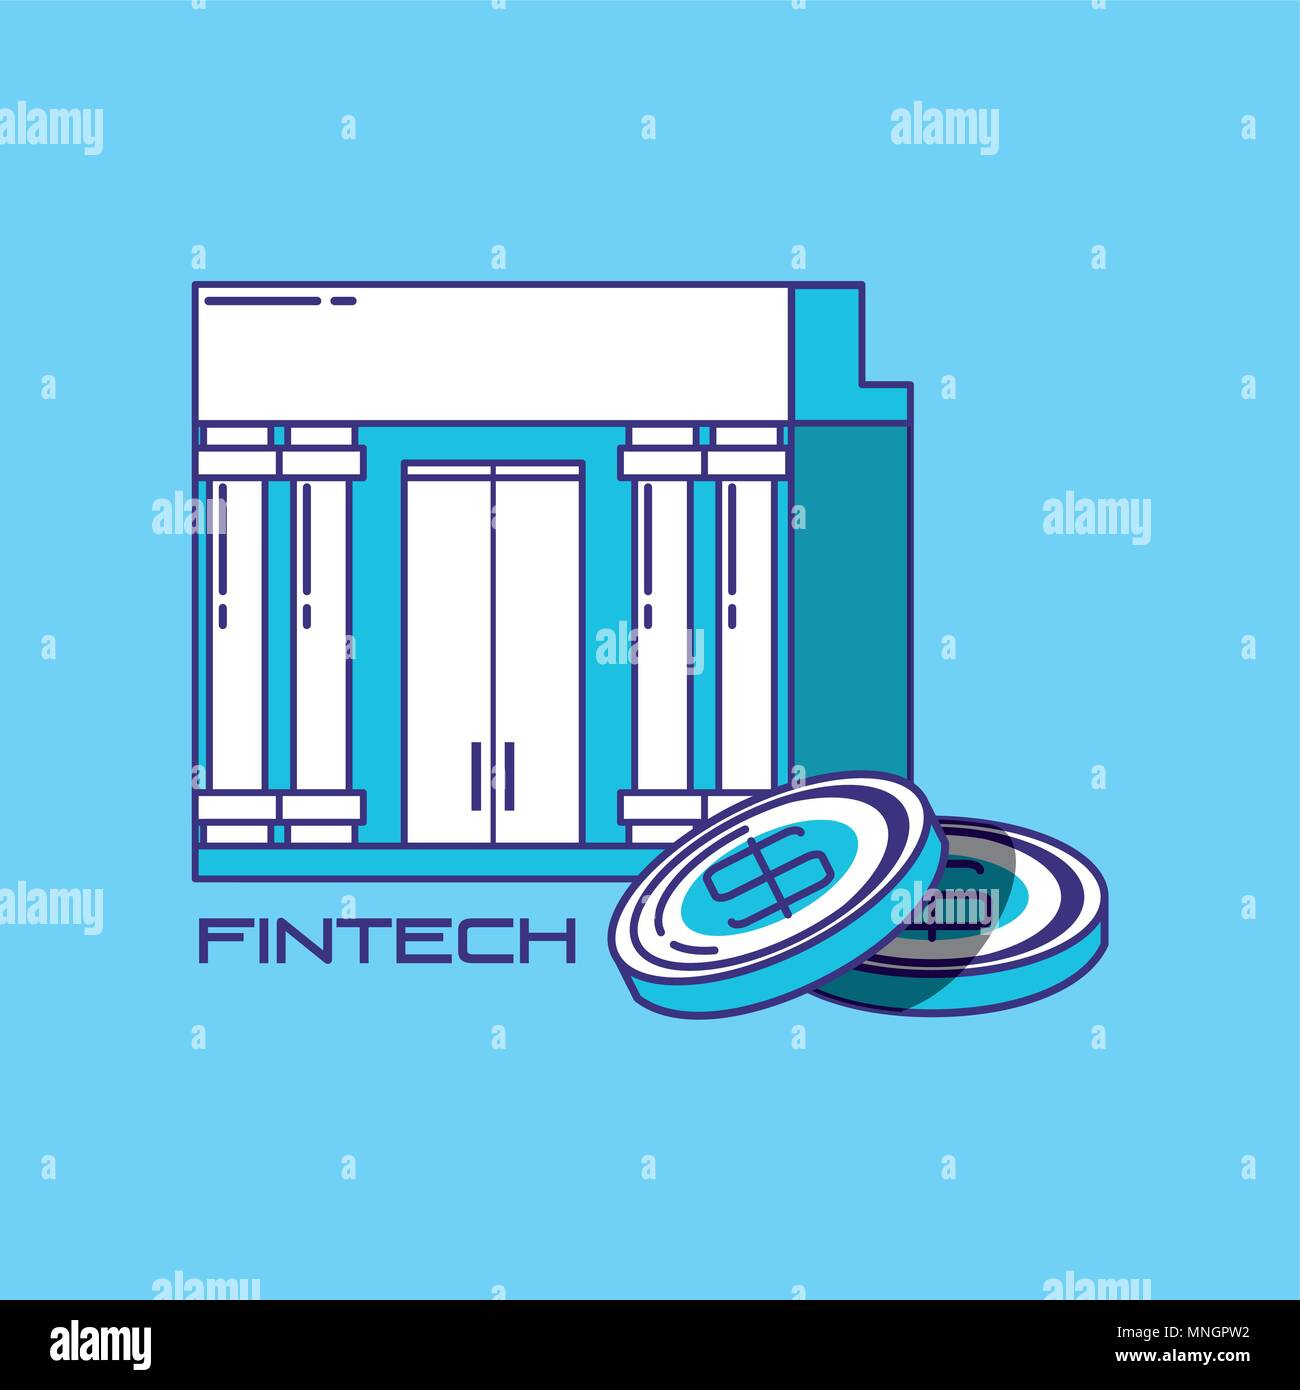 financial technology concept with bank building and coins over blue background, vector illustration Stock Vector